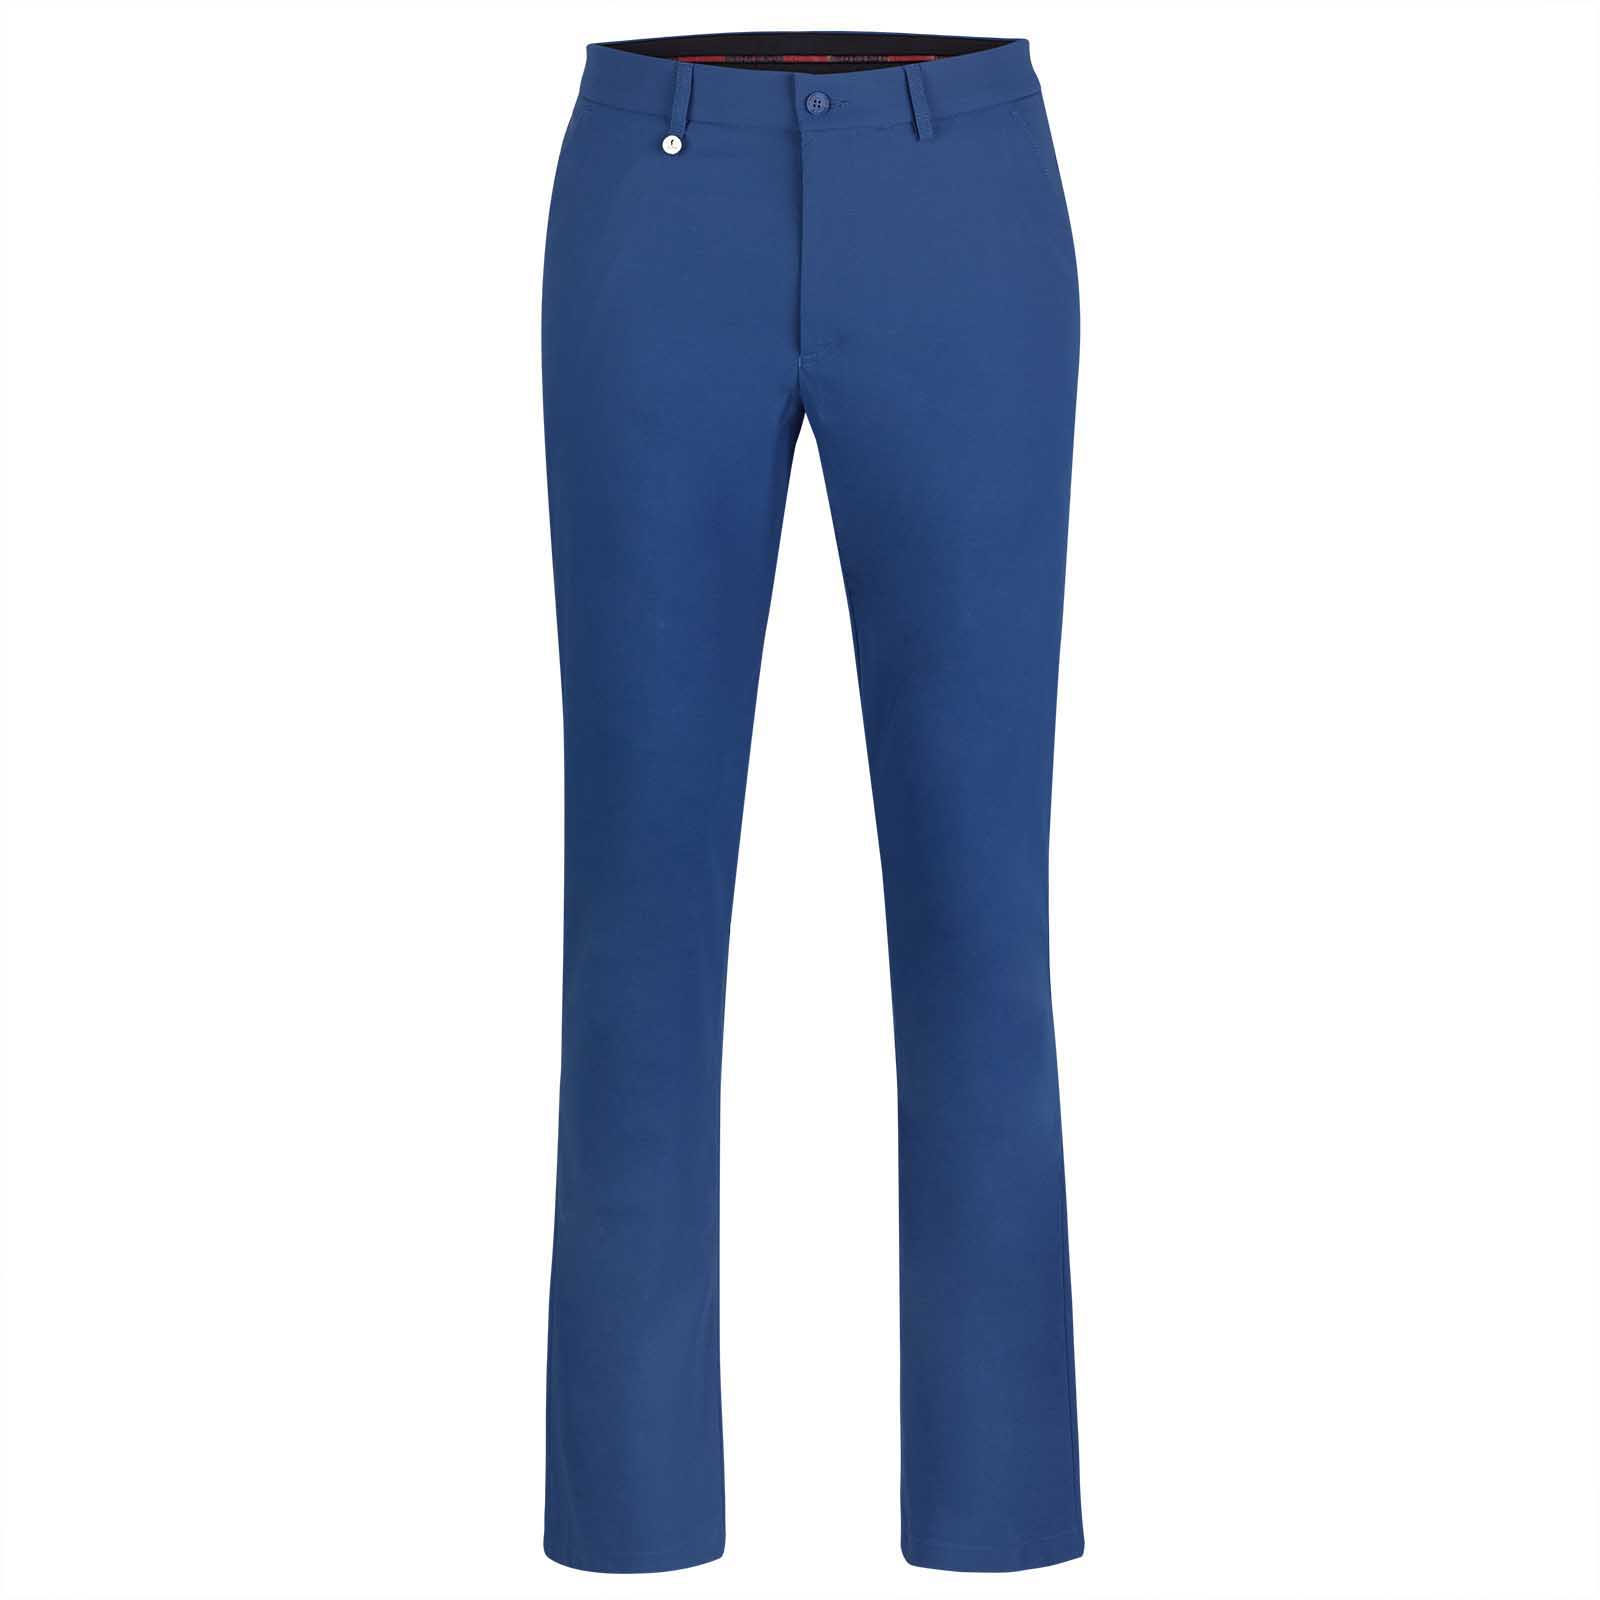 Men's 4-way stretch trousers with Sofileta® UV Protection